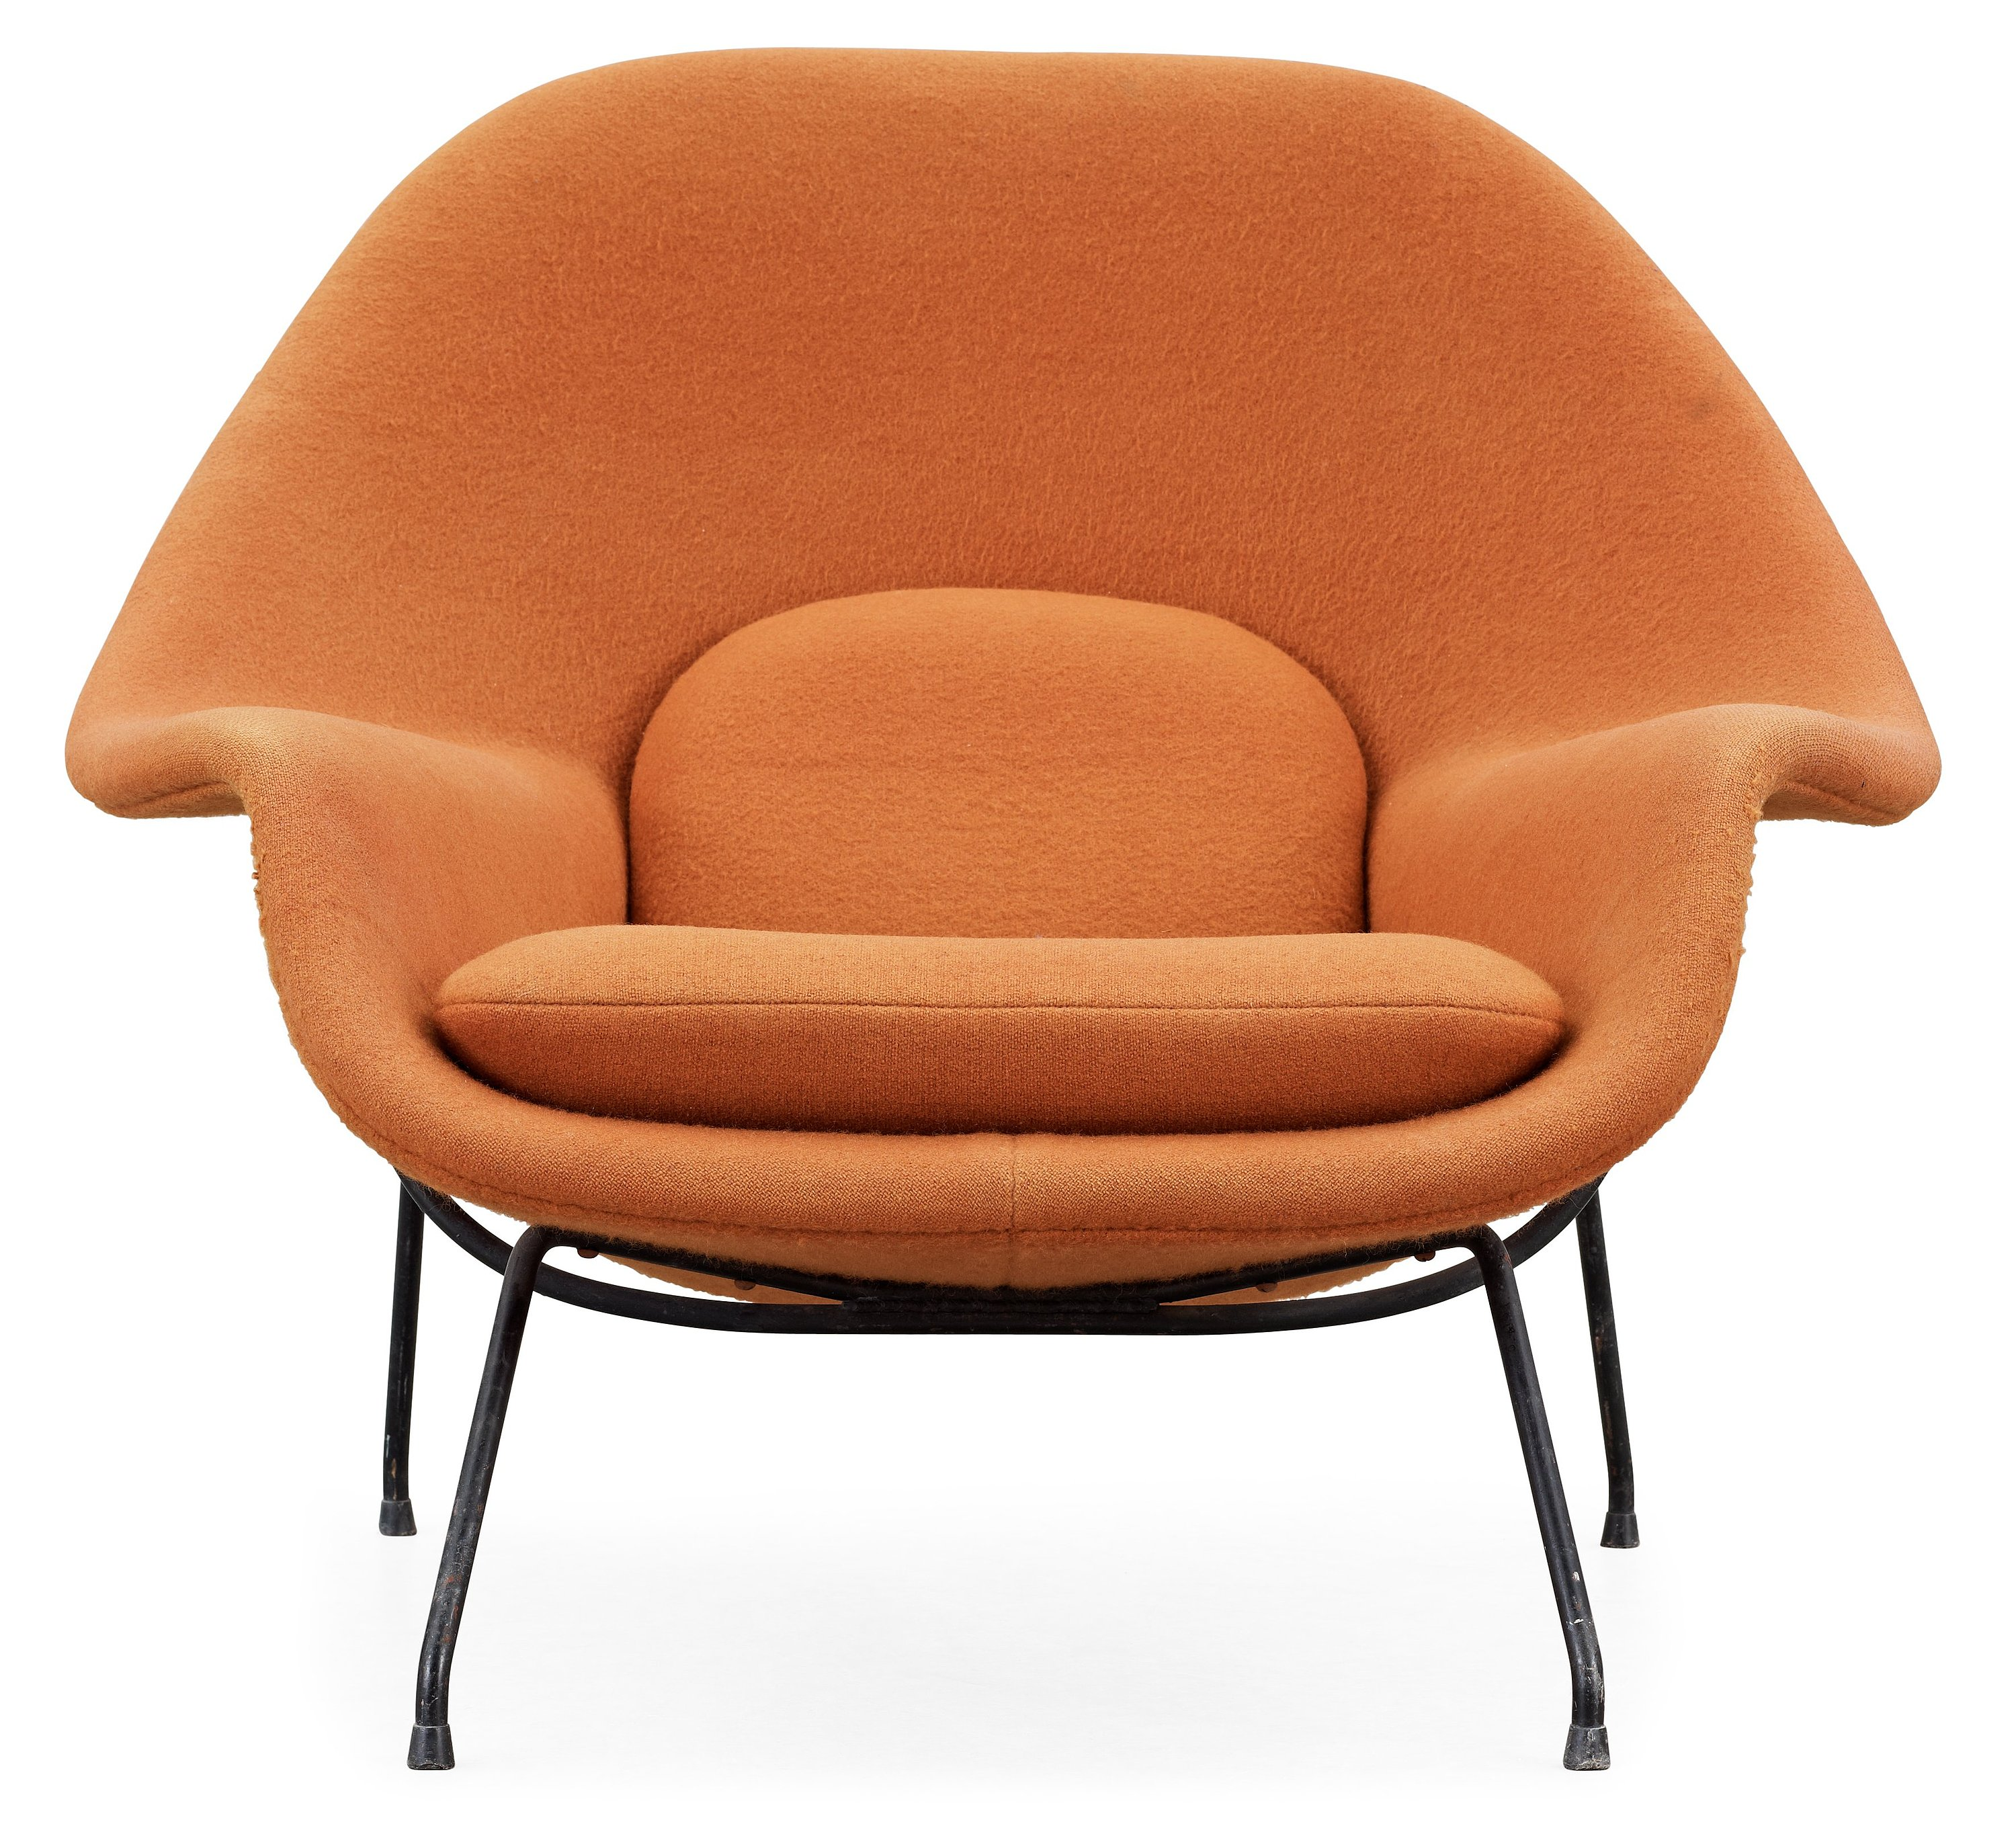 an eero saarinen u0027womb chairu0027 knoll inter